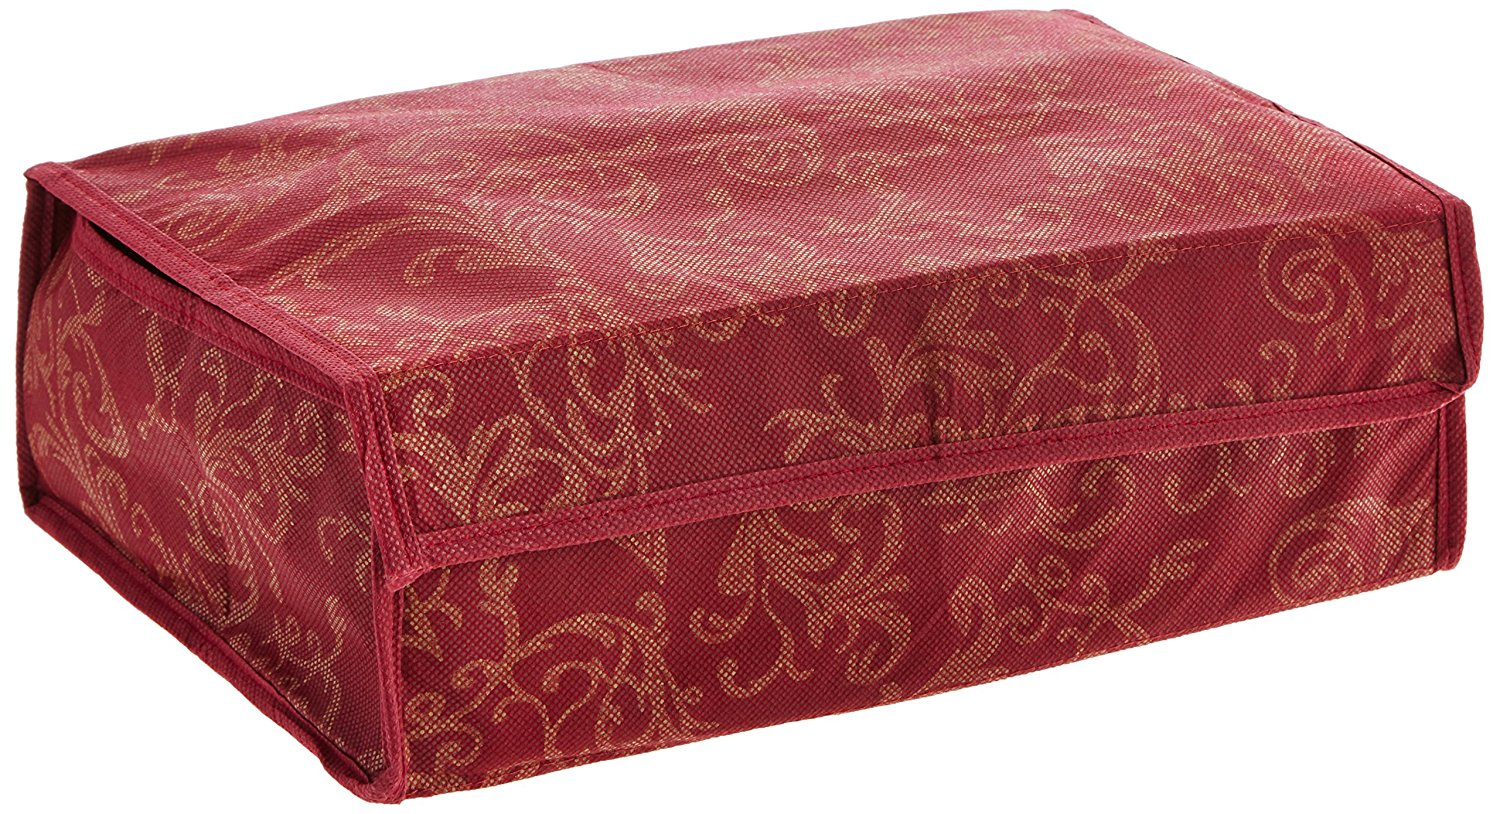 12 Compartment Intricate Leaf Pattern Soft-Cover Foldable Storage Box